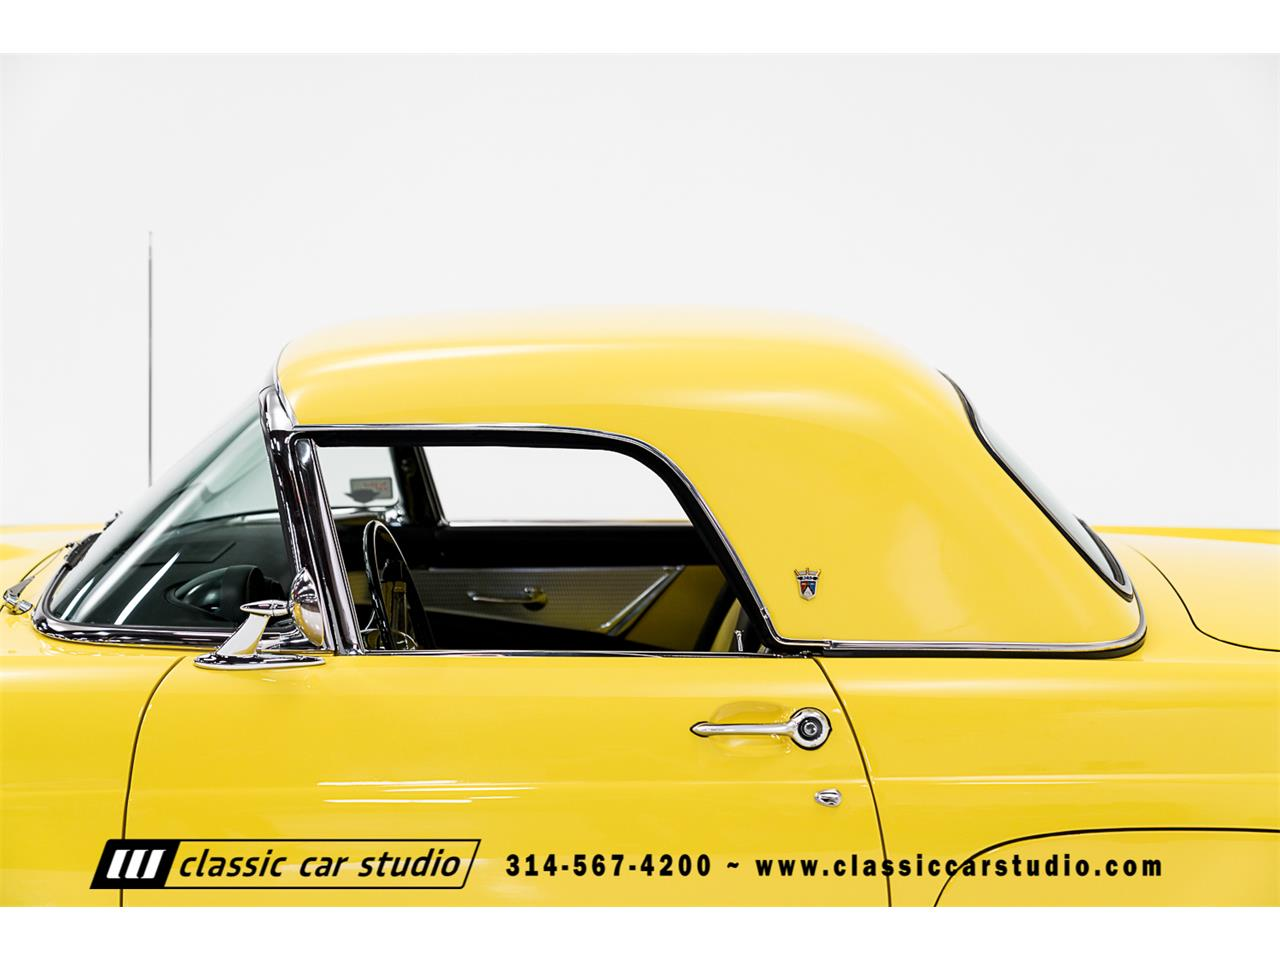 Large Picture of '55 Ford Thunderbird located in SAINT LOUIS Missouri Auction Vehicle - PKP1